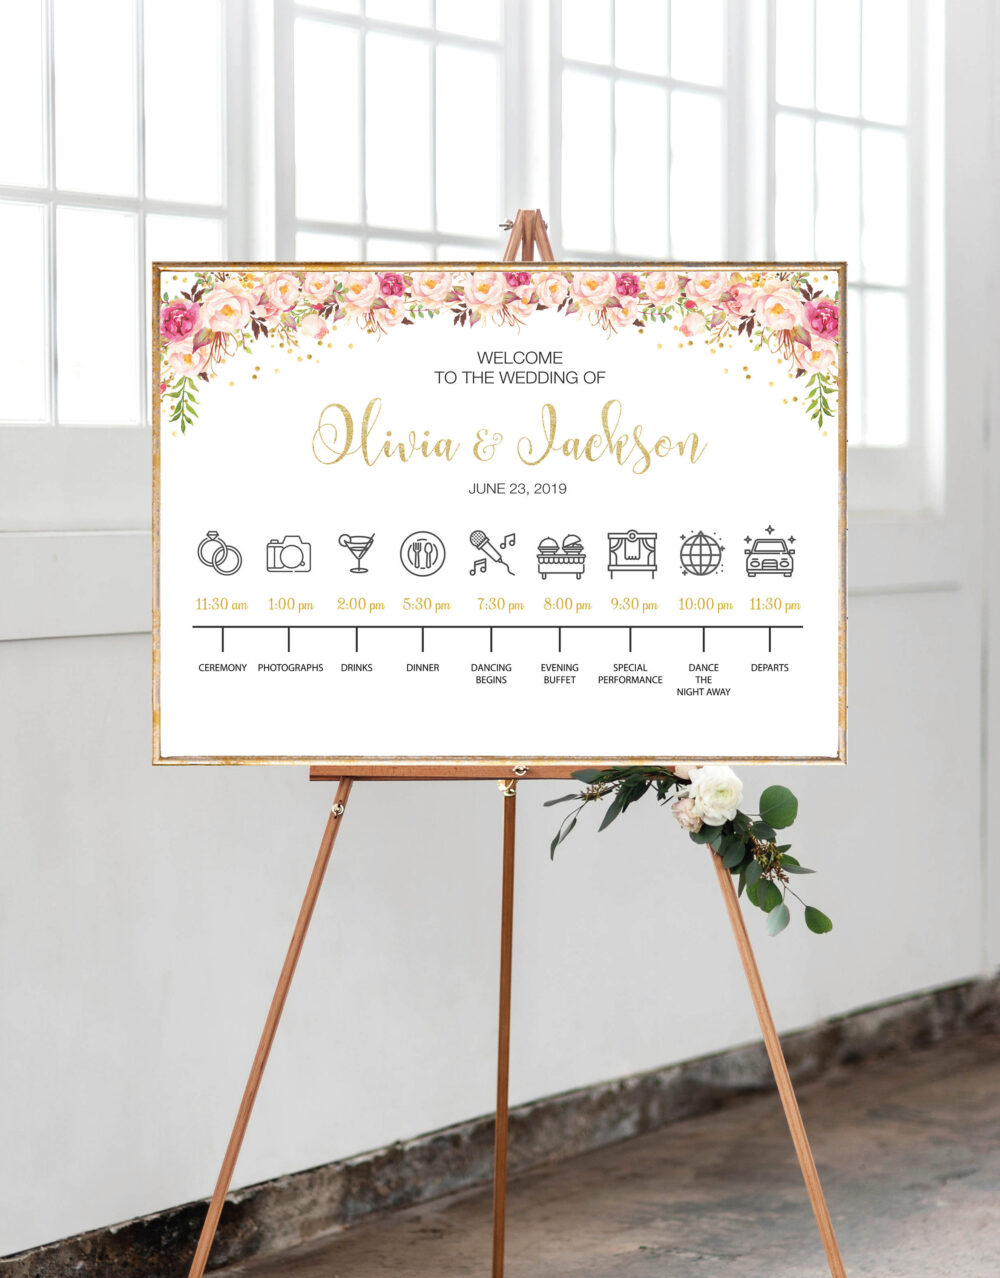 Wedding Timeline Template, Timeline Sign, Order Of Event, Itinerary Timeline, Schedule Events, Program Sign Ws62